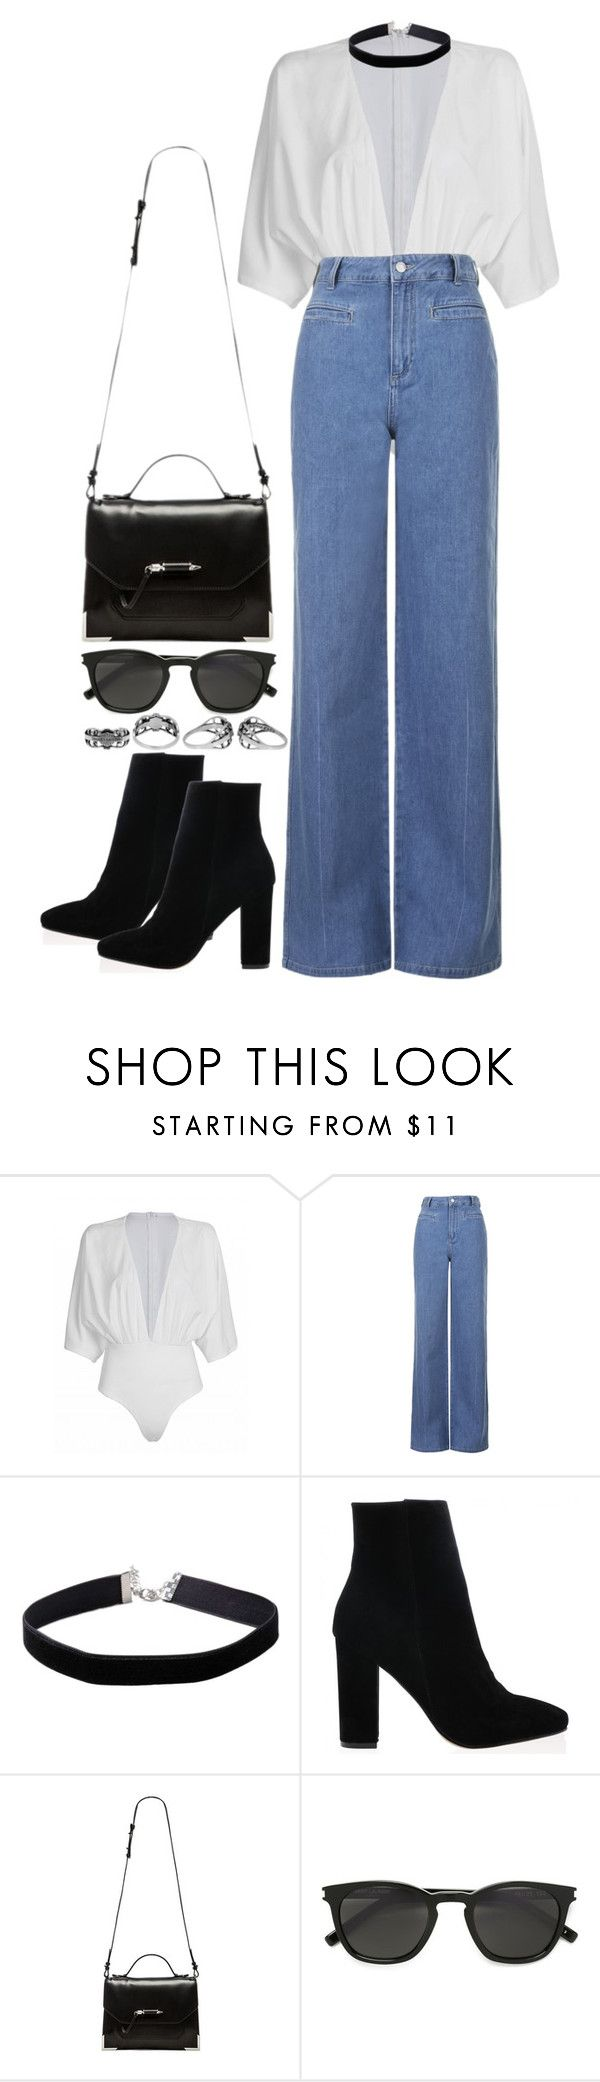 """""""Untitled #660"""" by weyheytati ❤ liked on Polyvore featuring Topshop, Miss Selfridge, Mackage, Yves Saint Laurent and Harley-Davidson"""